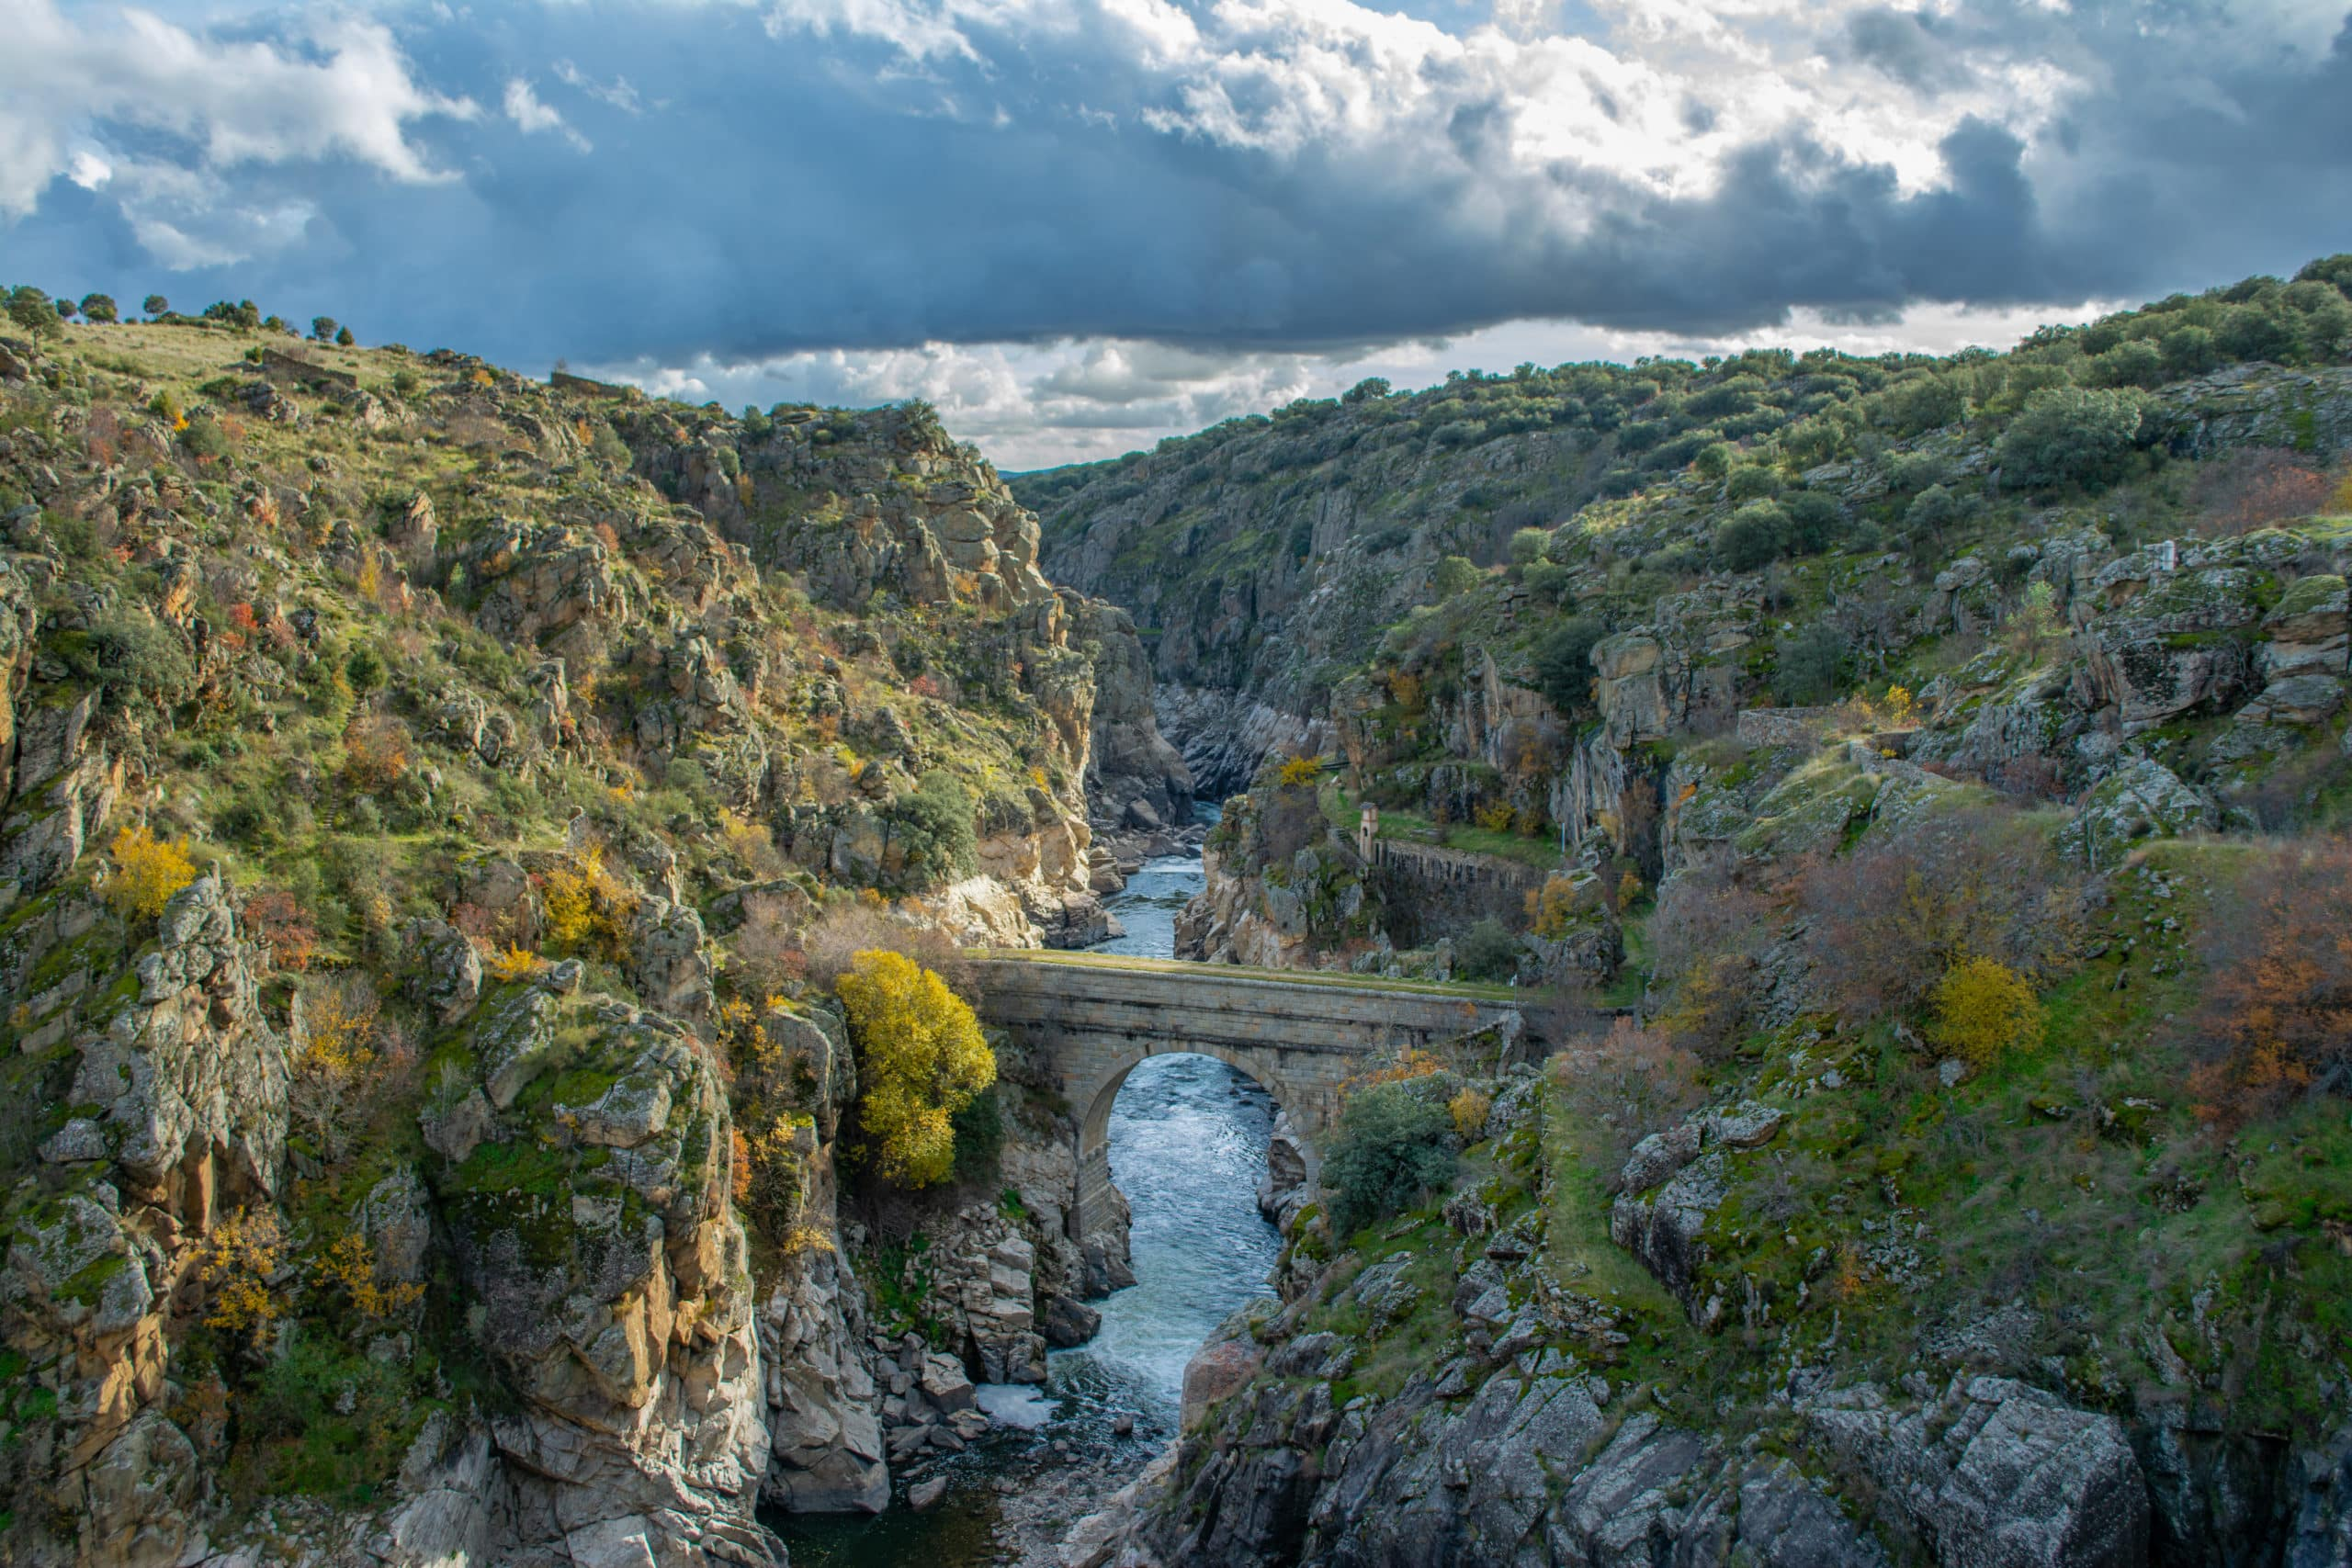 Lozoya River Canyon, Sierra Norte, Madrid, Spain